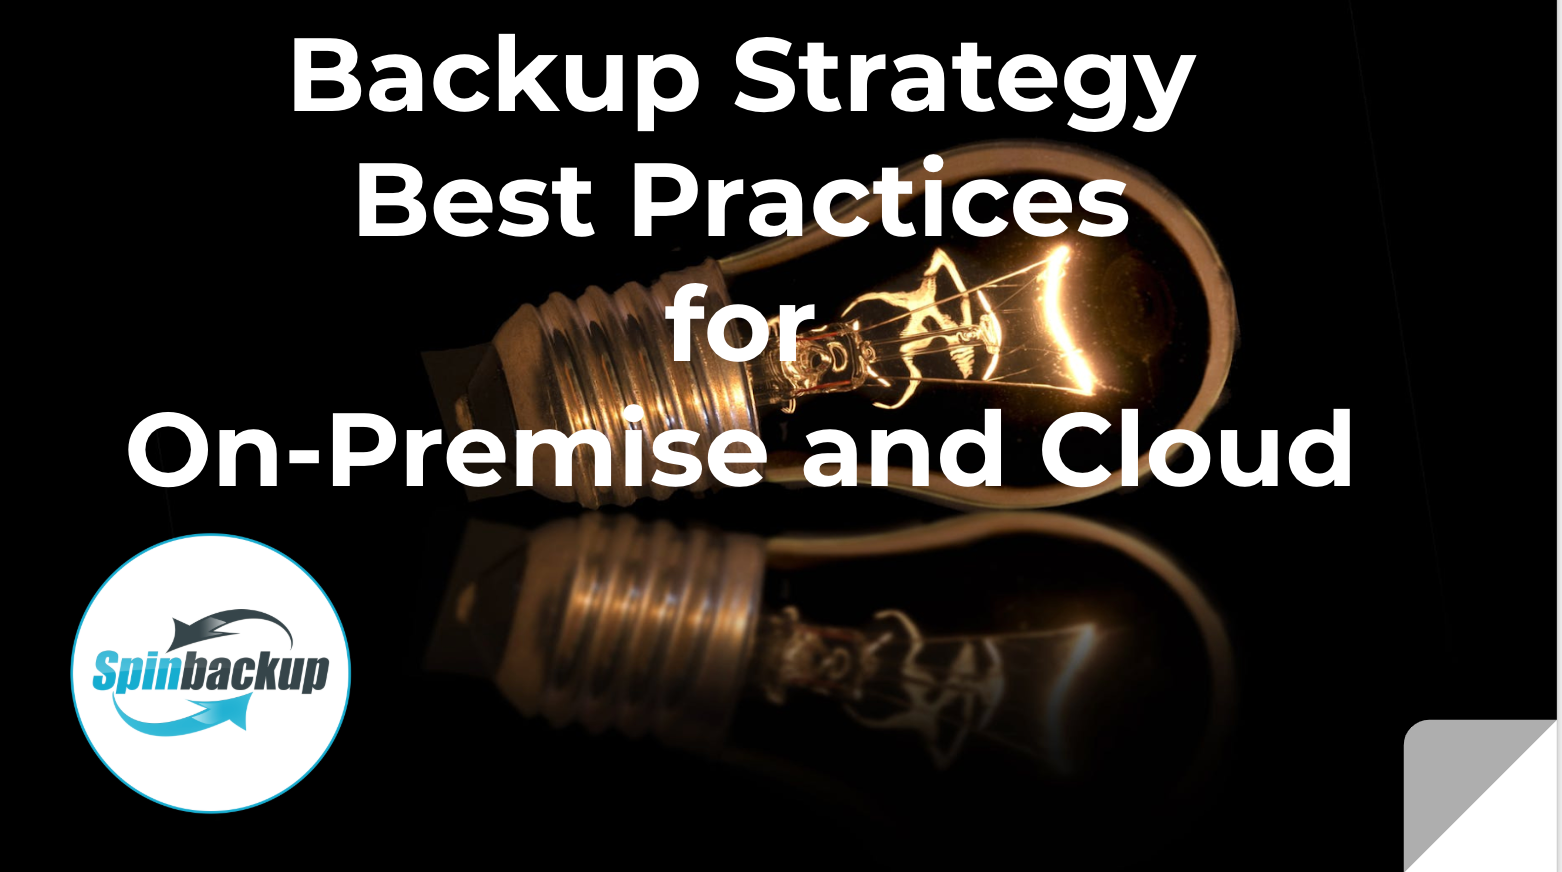 Backup Strategy Best Practices for On-Premise and Cloud